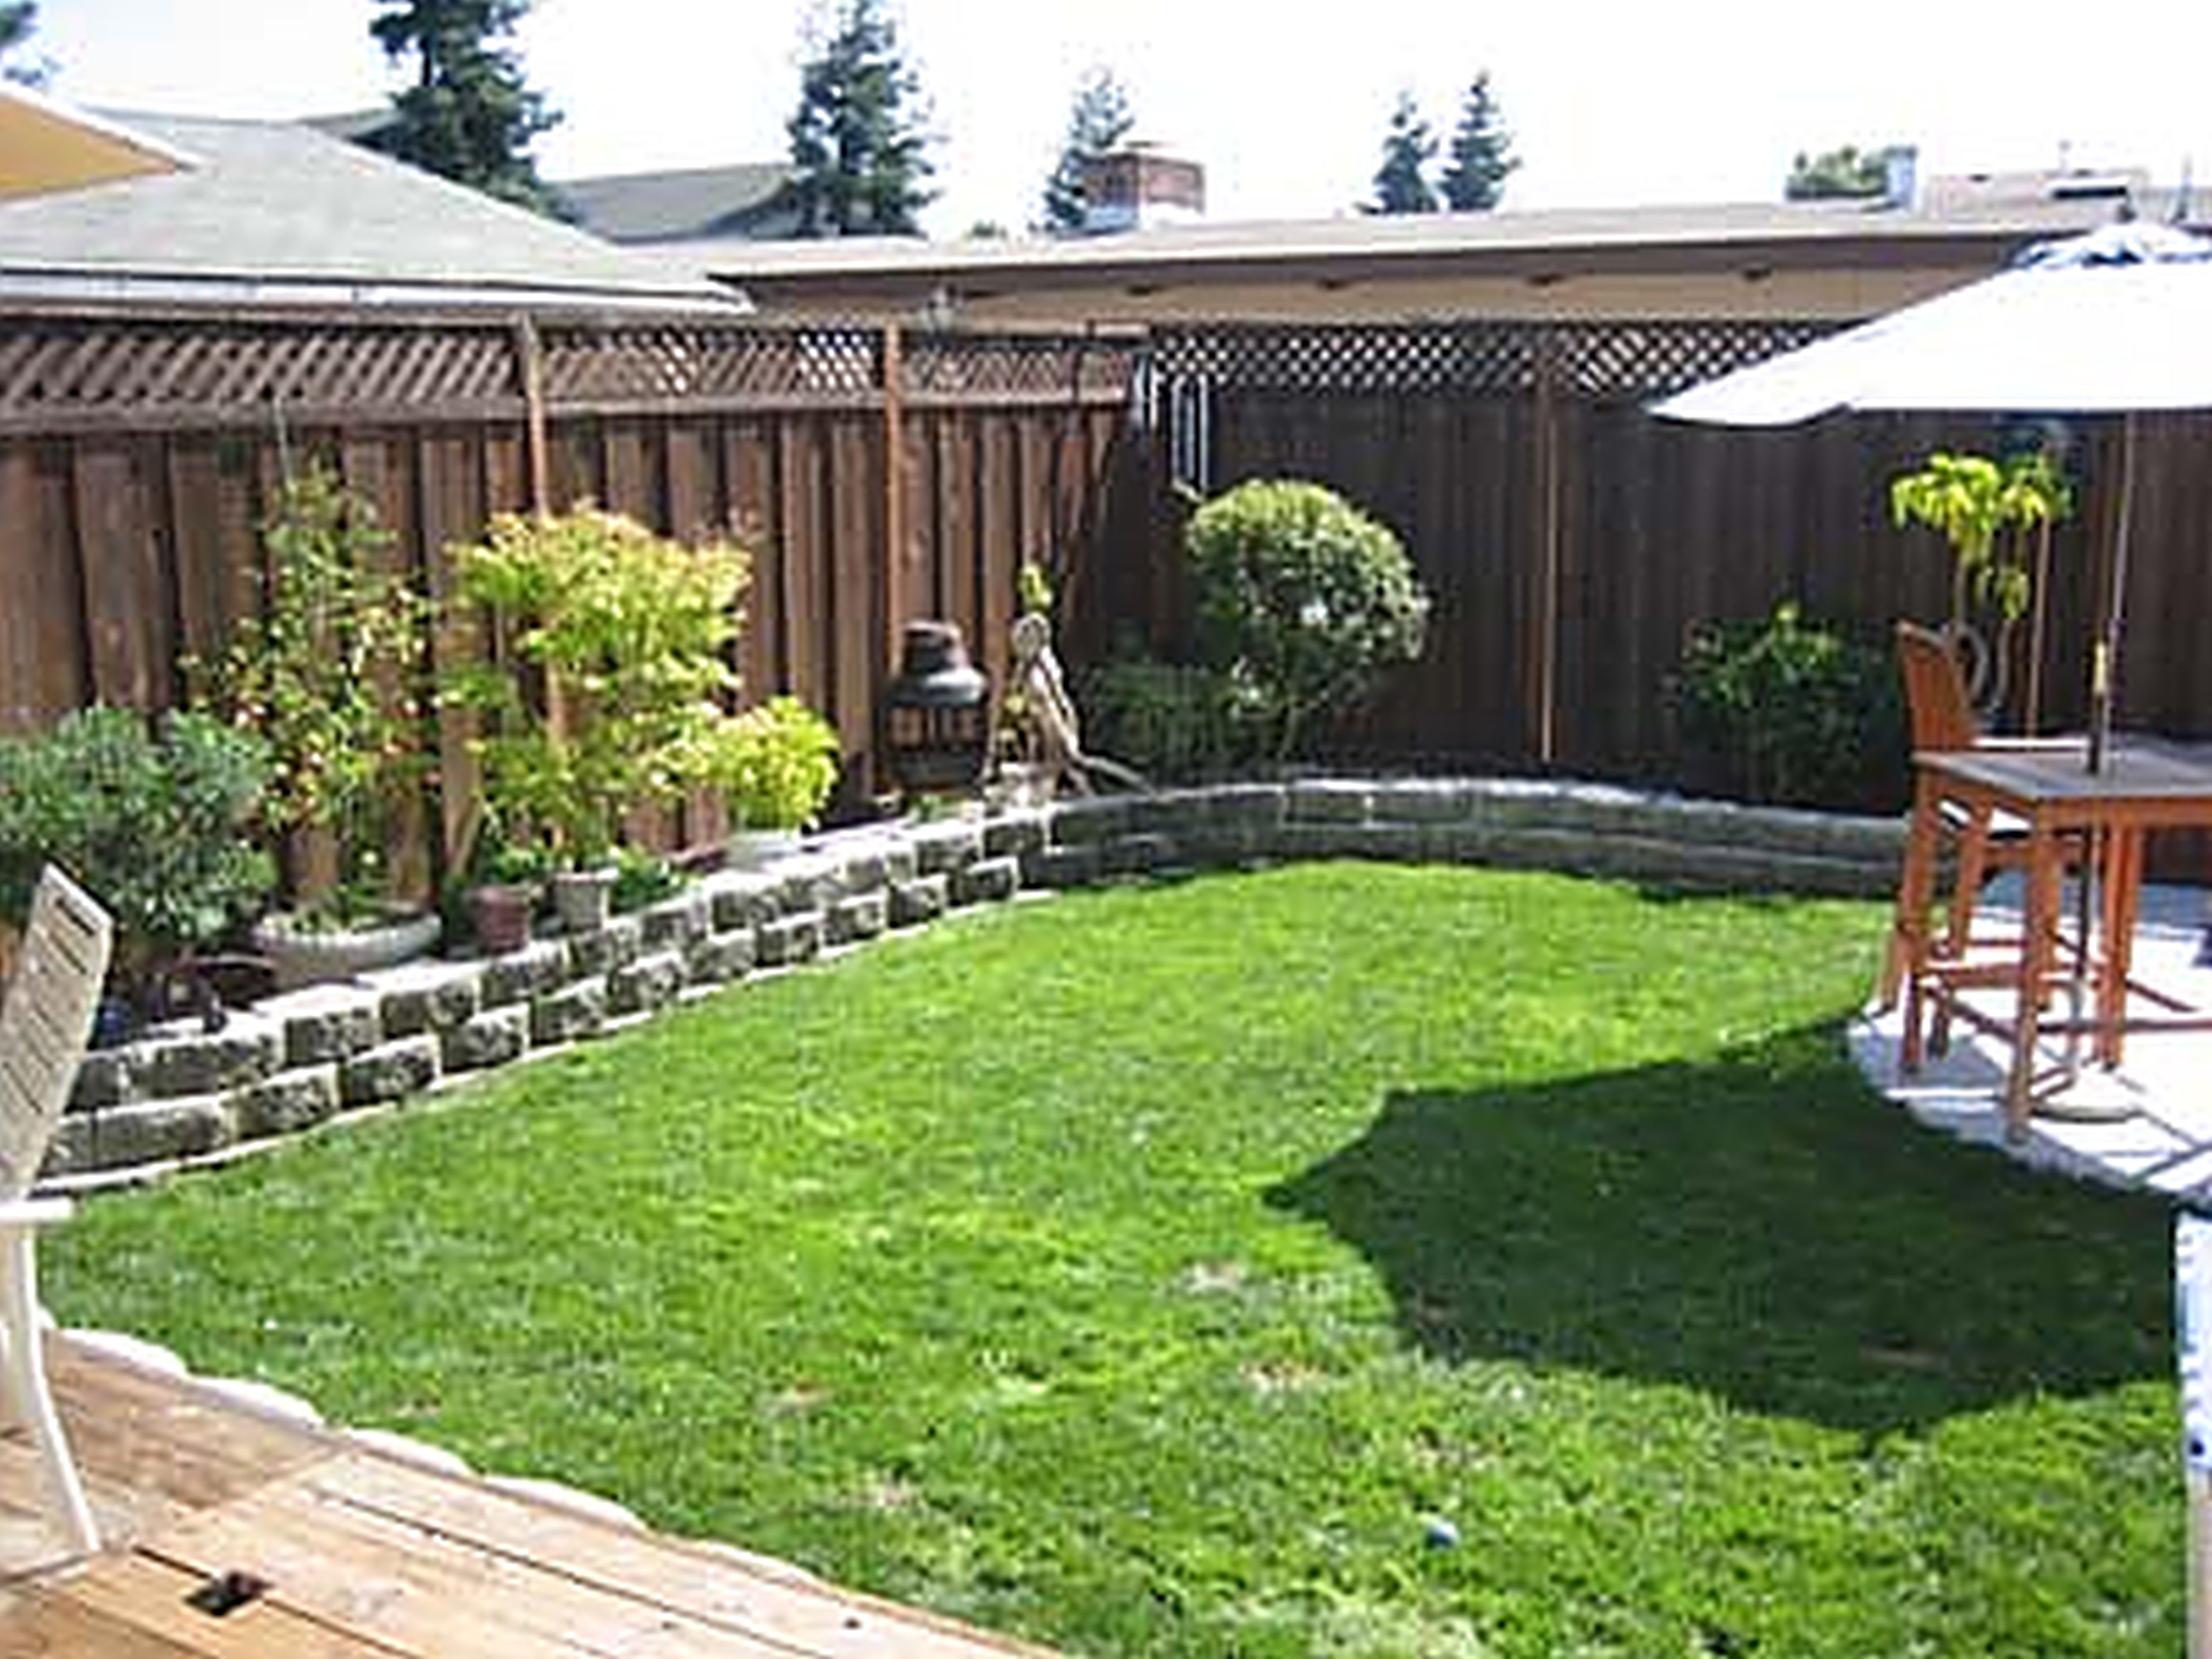 Landscaping Ideas For Small Yards Designs Dvmx Home Decor for 15 Clever Ideas How to Craft Backyard Design Ideas For Small Yards